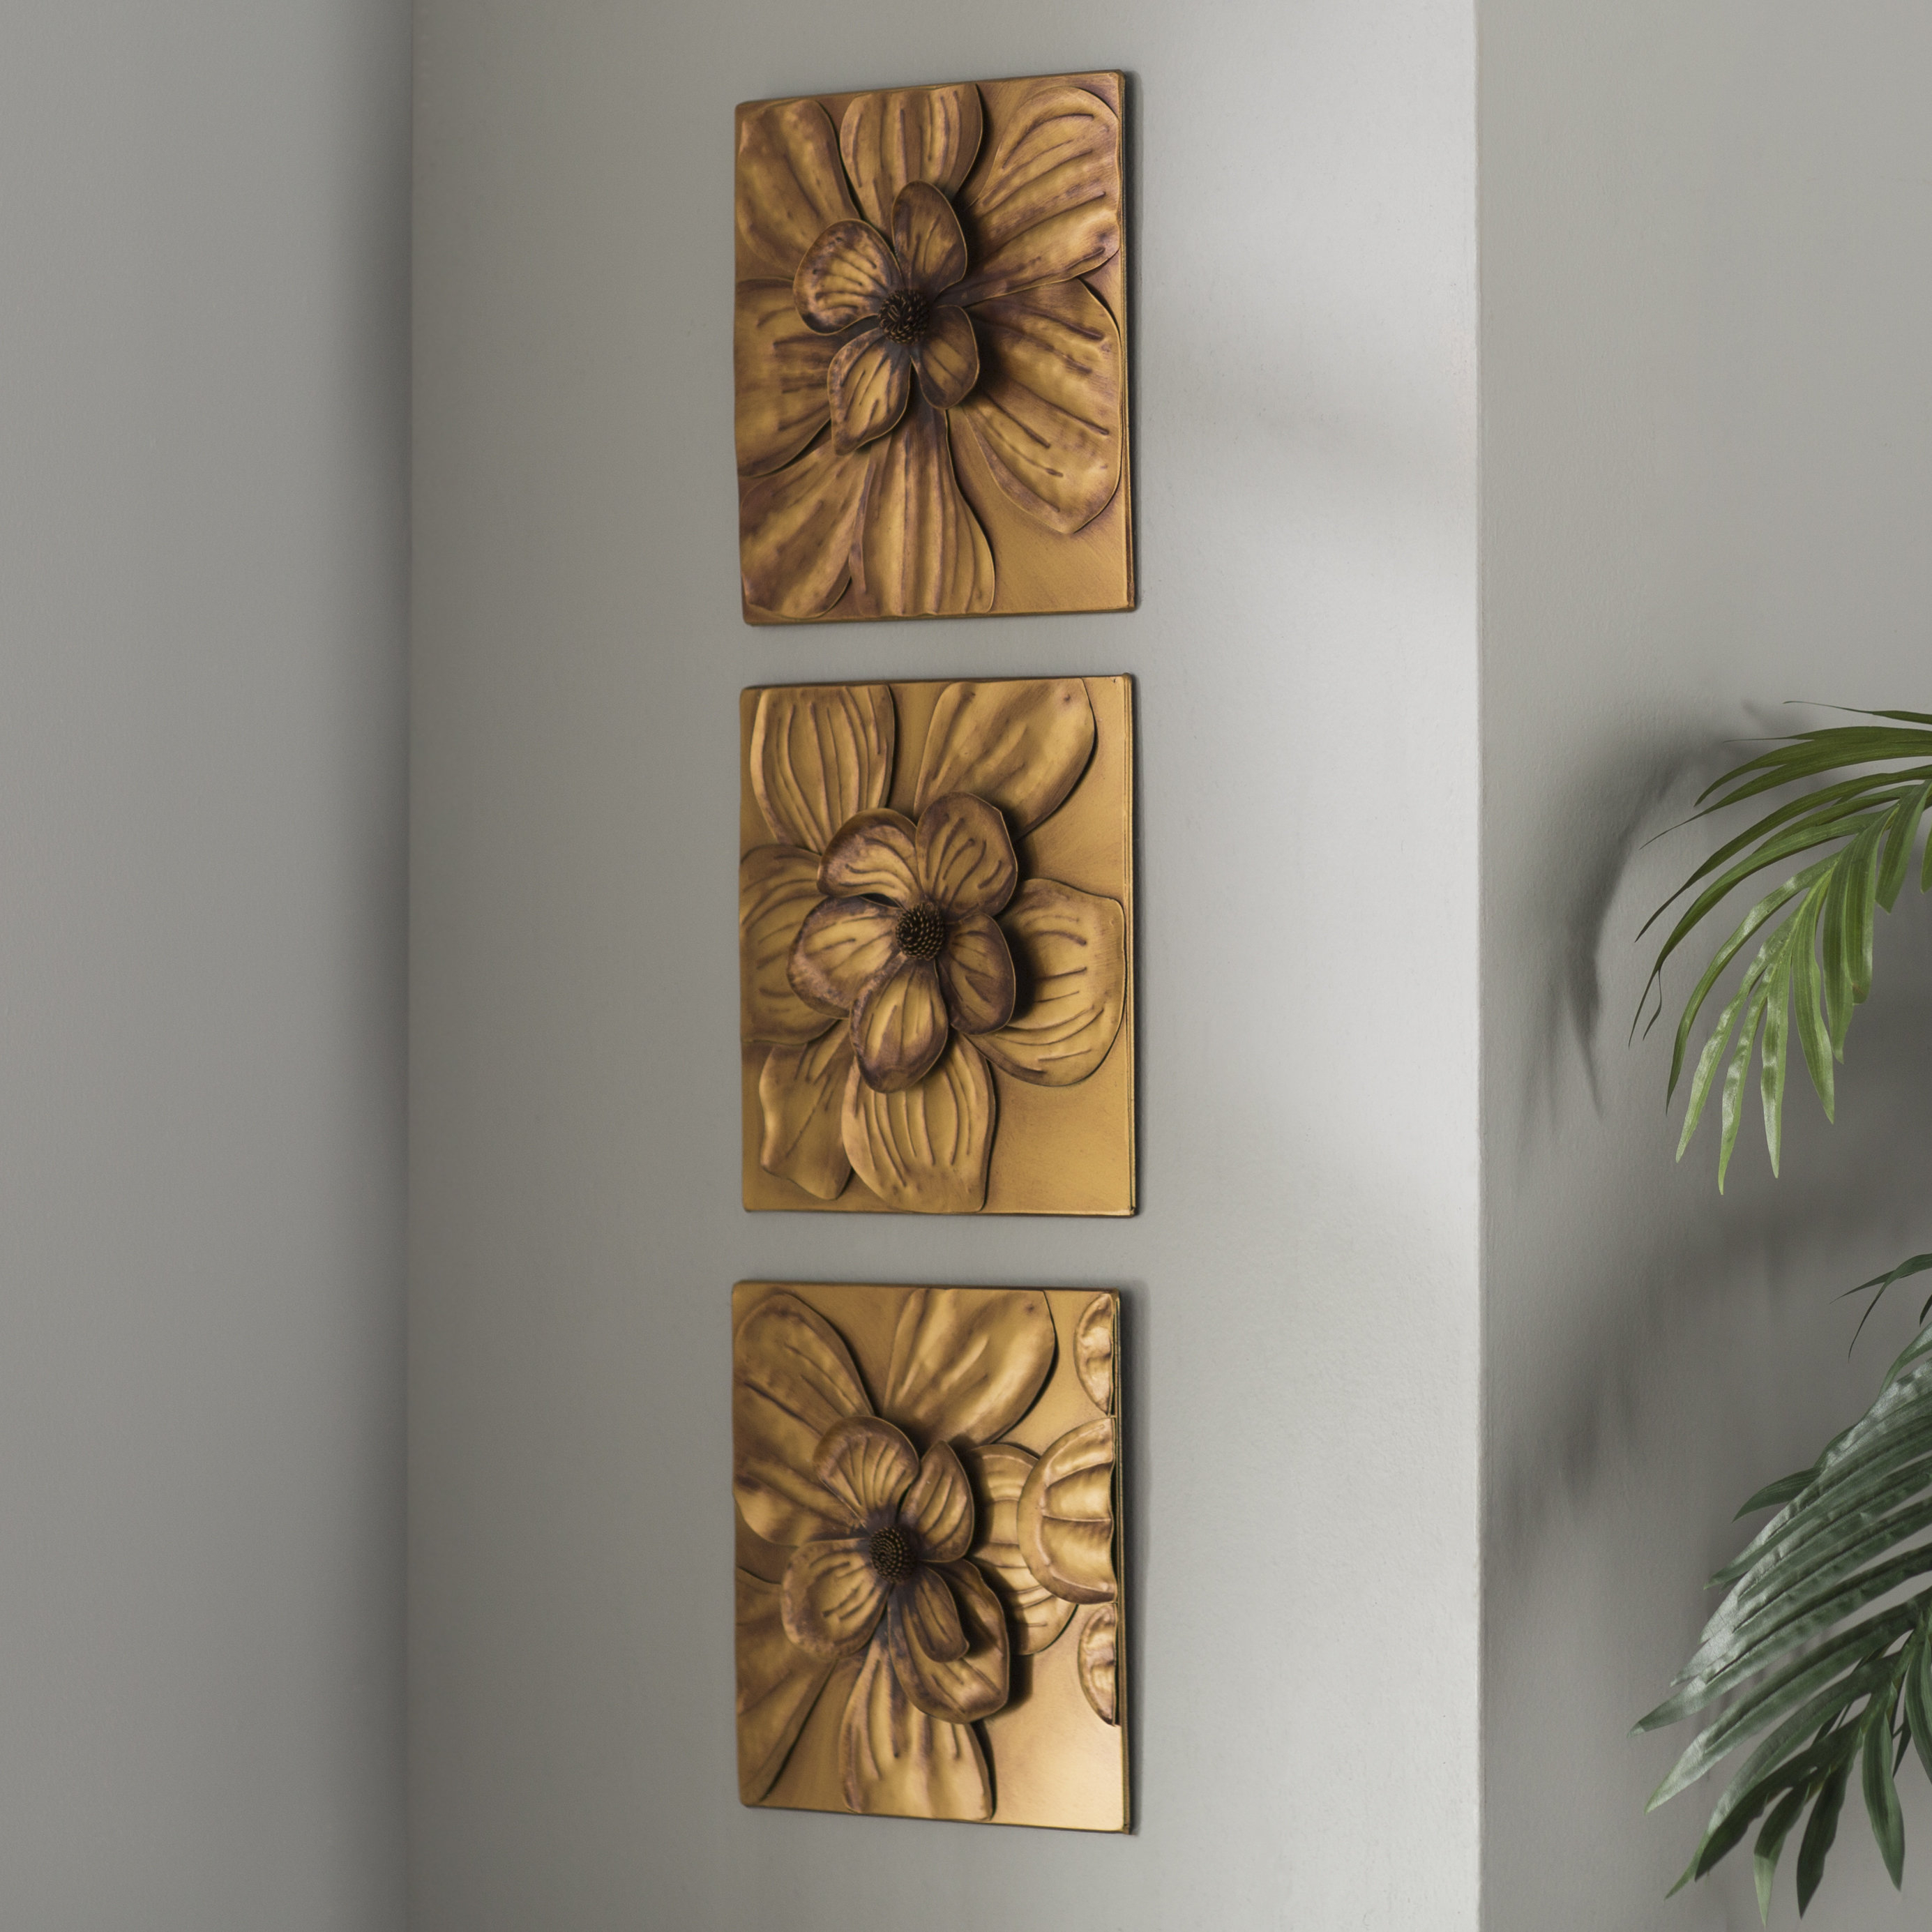 Charlton Home 3 Piece Magnolia Brown Panel Wall Décor Set & Reviews Pertaining To Most Recently Released 4 Piece Wall Decor Sets By Charlton Home (View 6 of 20)